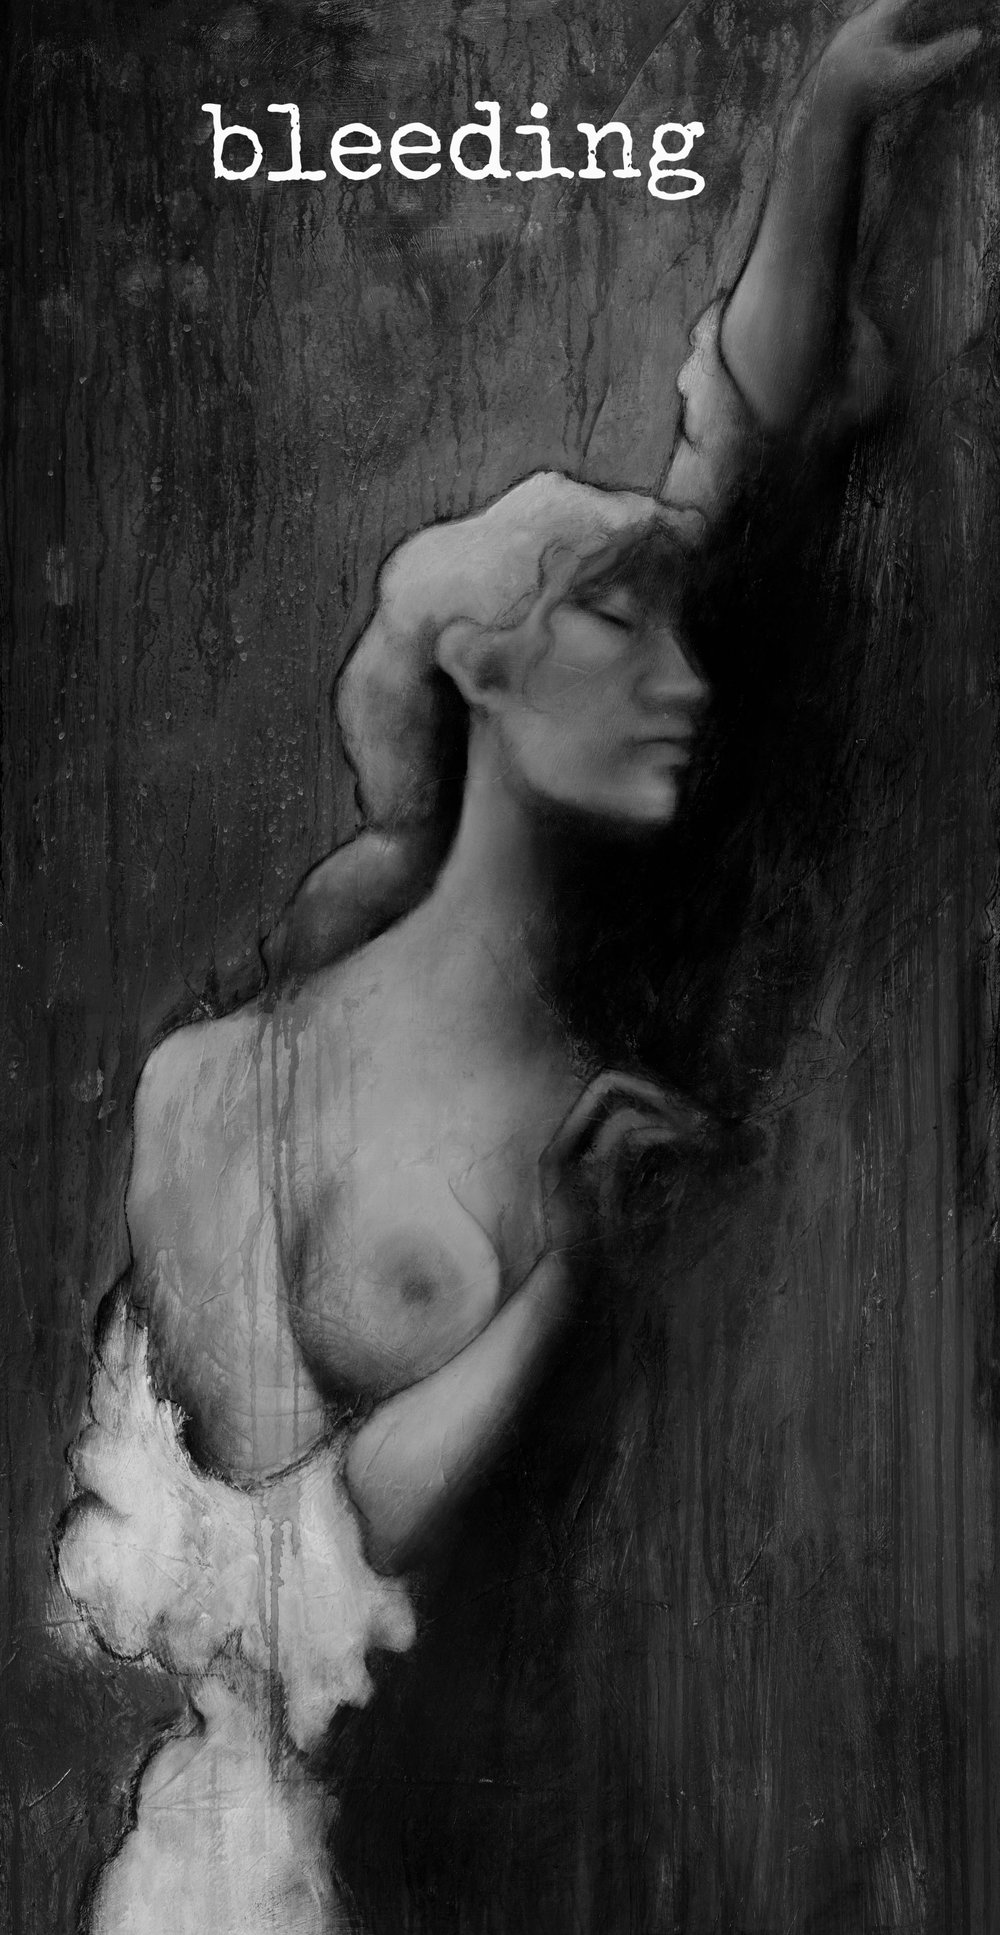 Abandoned by her childrenNature quietly mournsMistreated, hurtNature silently weepsWounded, drainedNature slowly withersAgonizing until her open woundscover the earth -